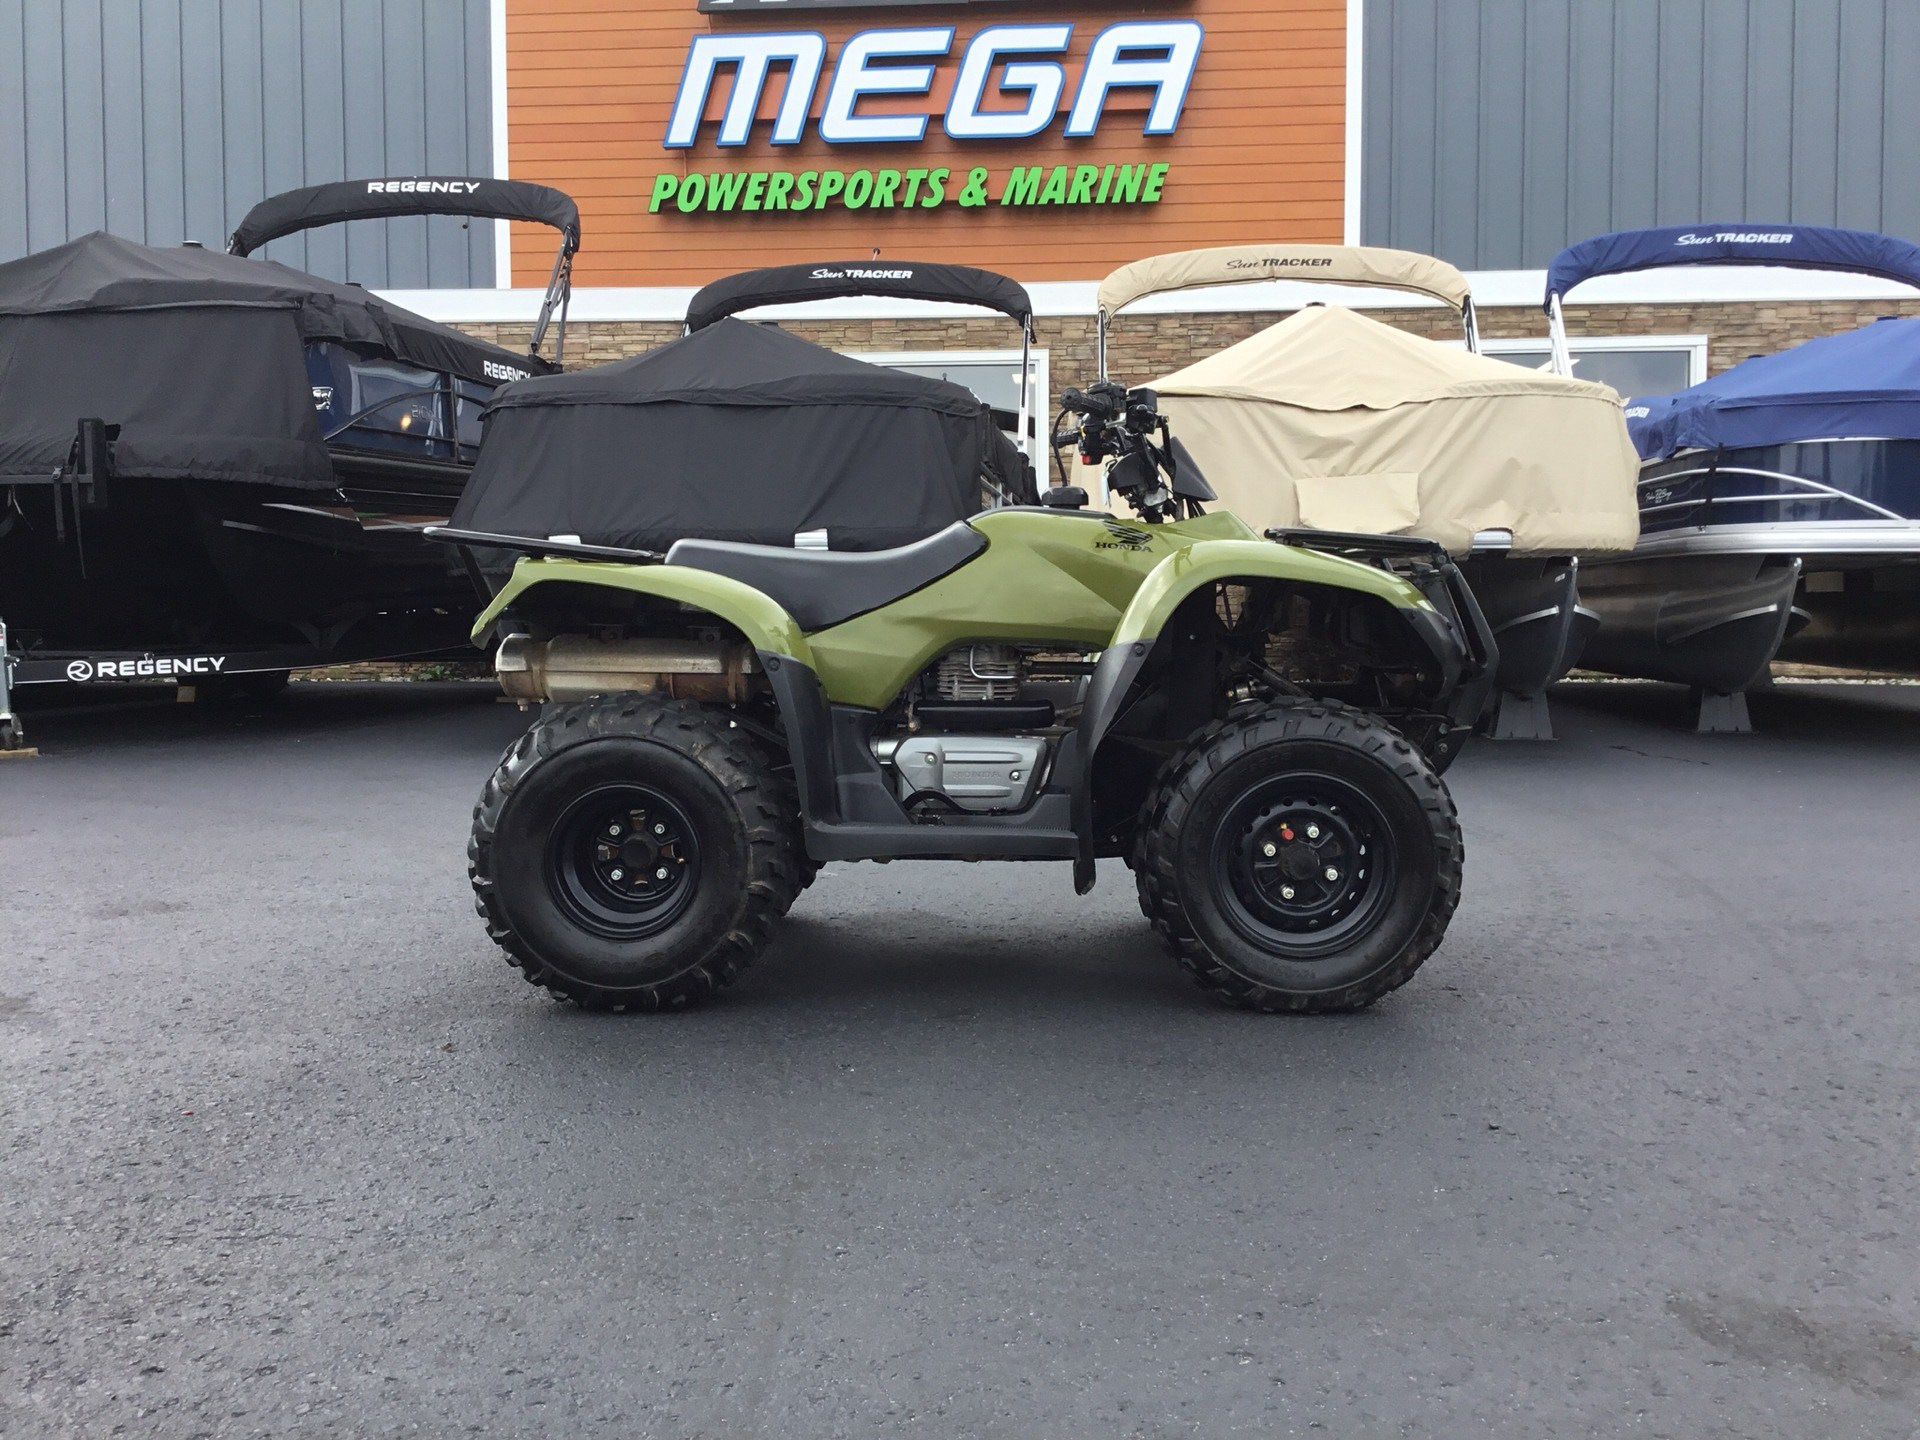 2017 Honda FourTrax Recon ES for sale 164608